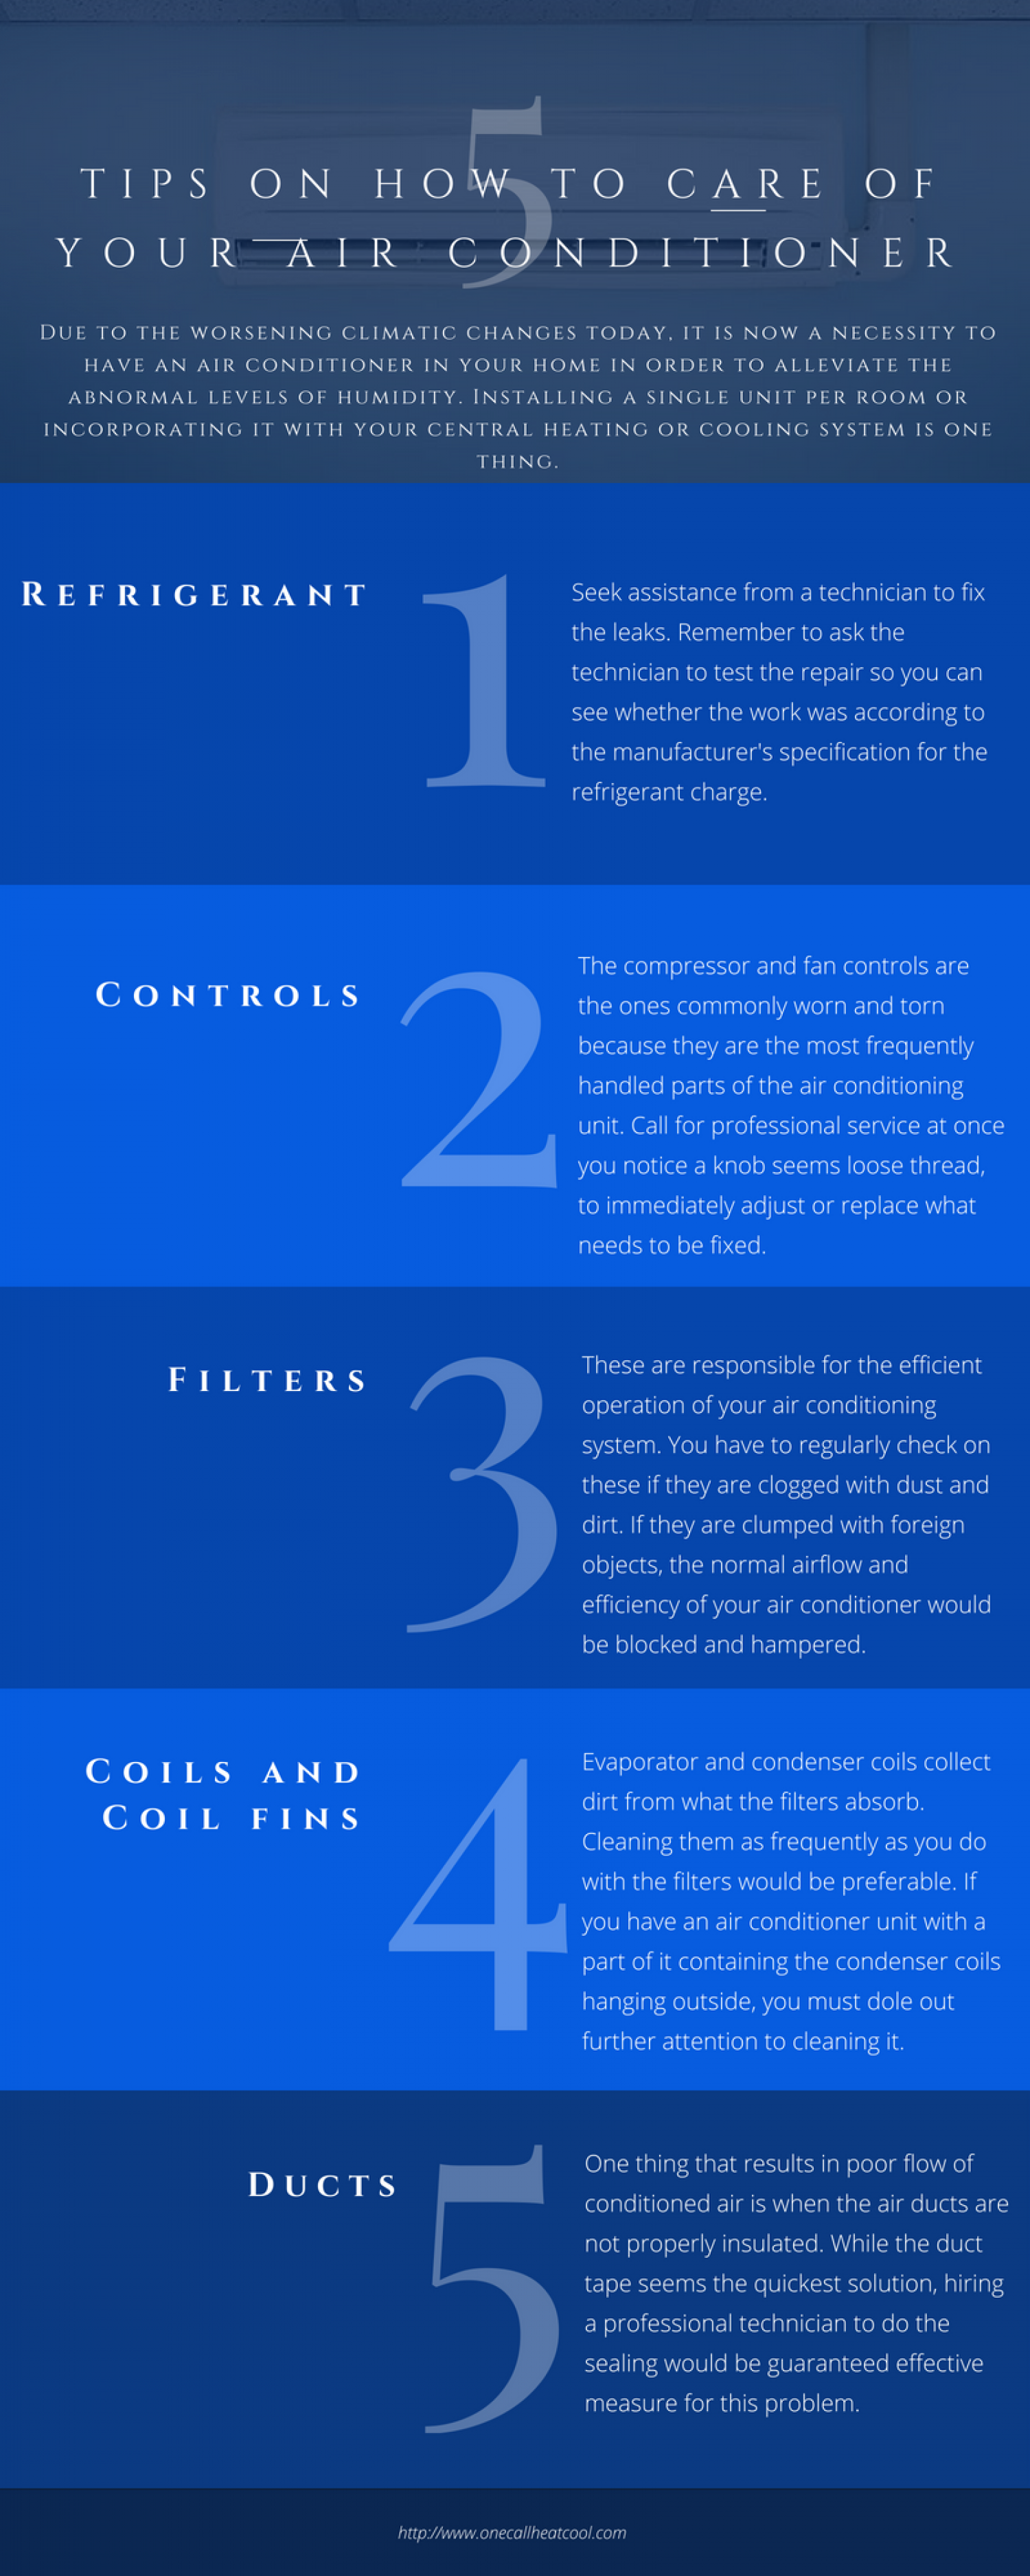 5 Effective Air Conditioner Maintenance Tips To Know Keep The Outdoor Unit Clean And Cool Be Sure Air Conditioner Maintenance Buddhist Traditions Onboarding